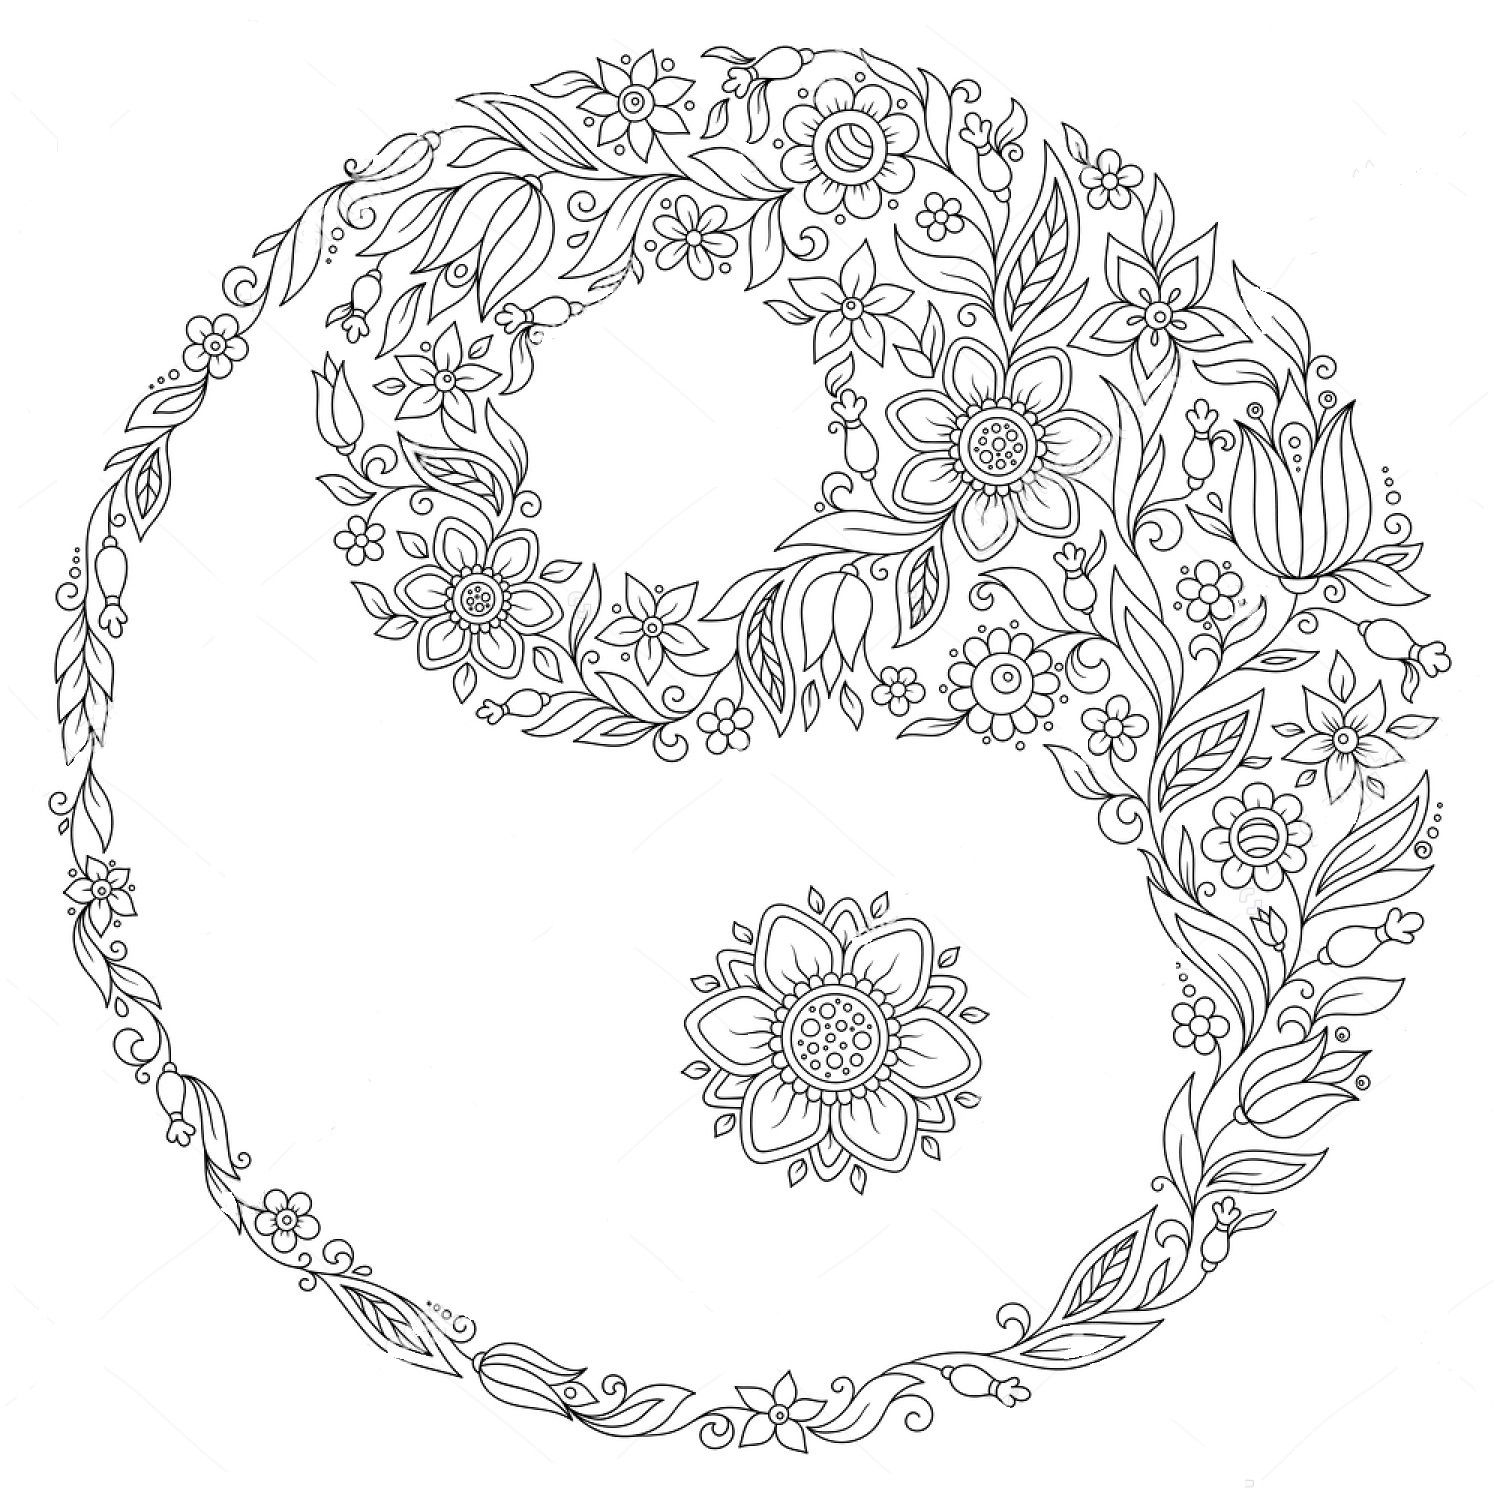 Yin Yang zentangle coloring page Paper Crafting